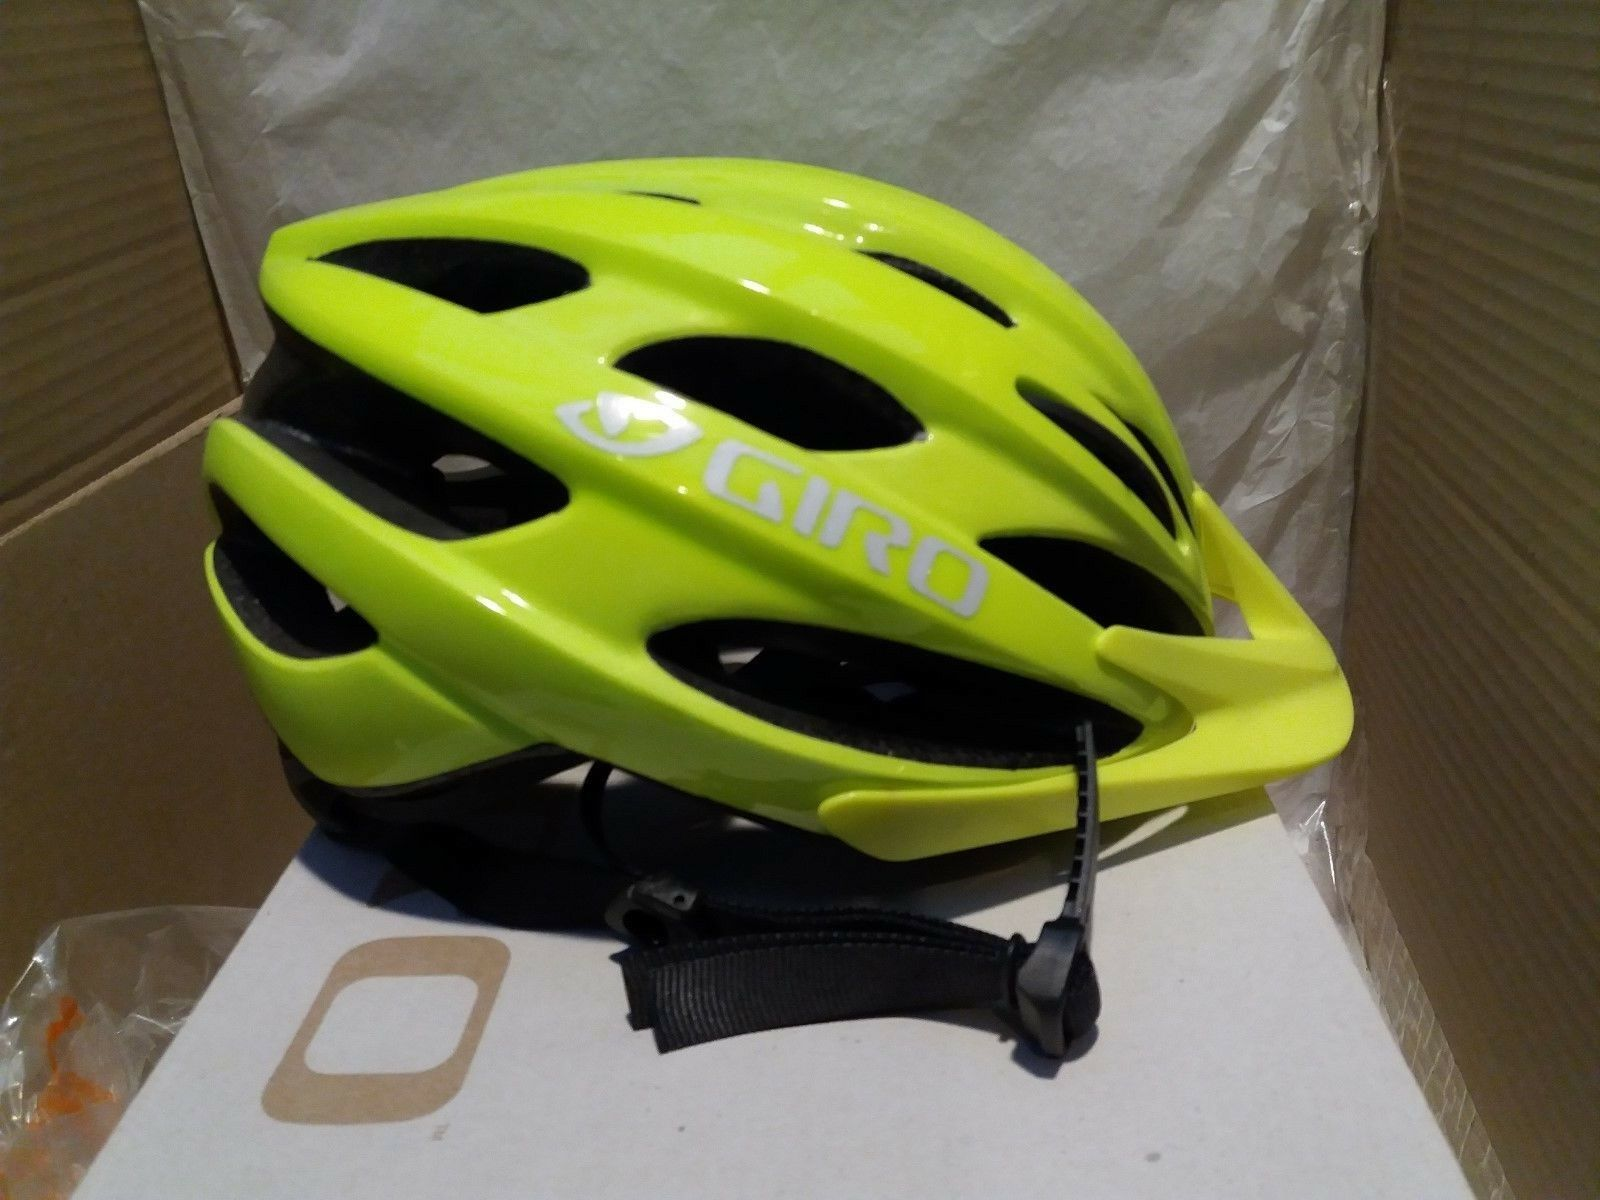 Giro Revel - Adult Cycling Helmet - Highlight Yellow - Universal Fit 54-61 cm